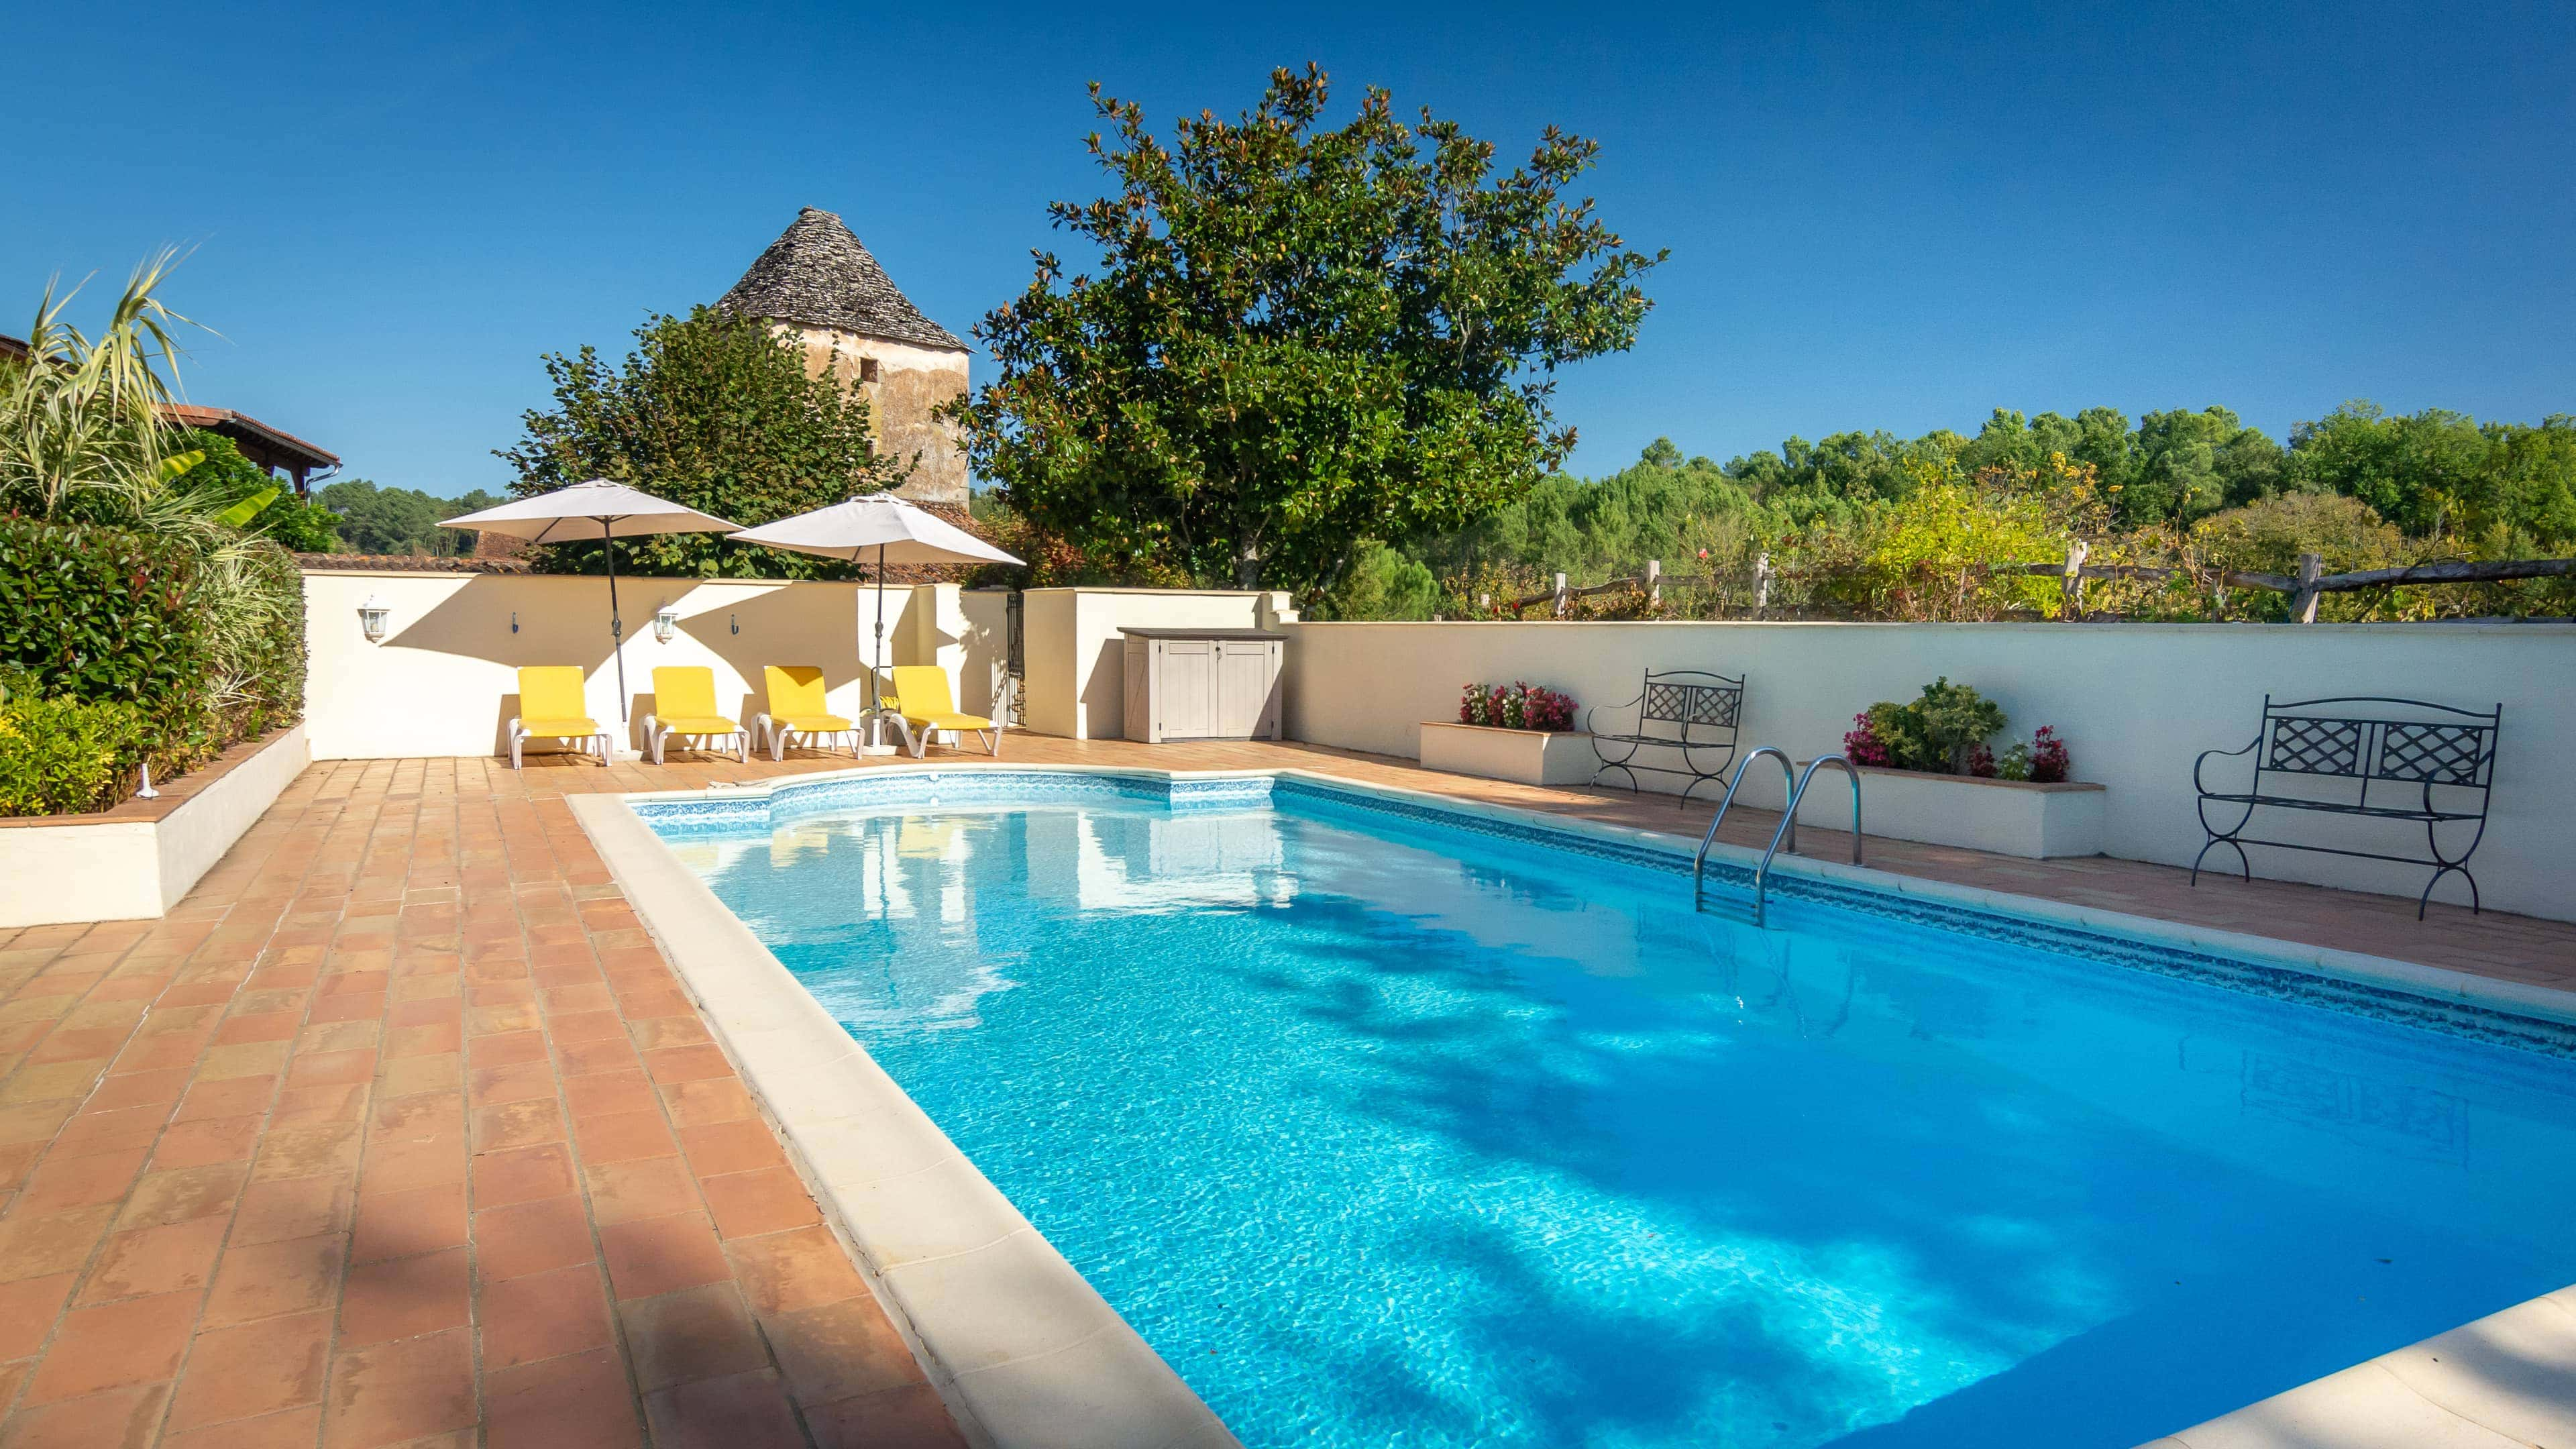 La Borie Gites | Gites and Holiday Home with Swimming Pool in the Dordogne & Lot, France